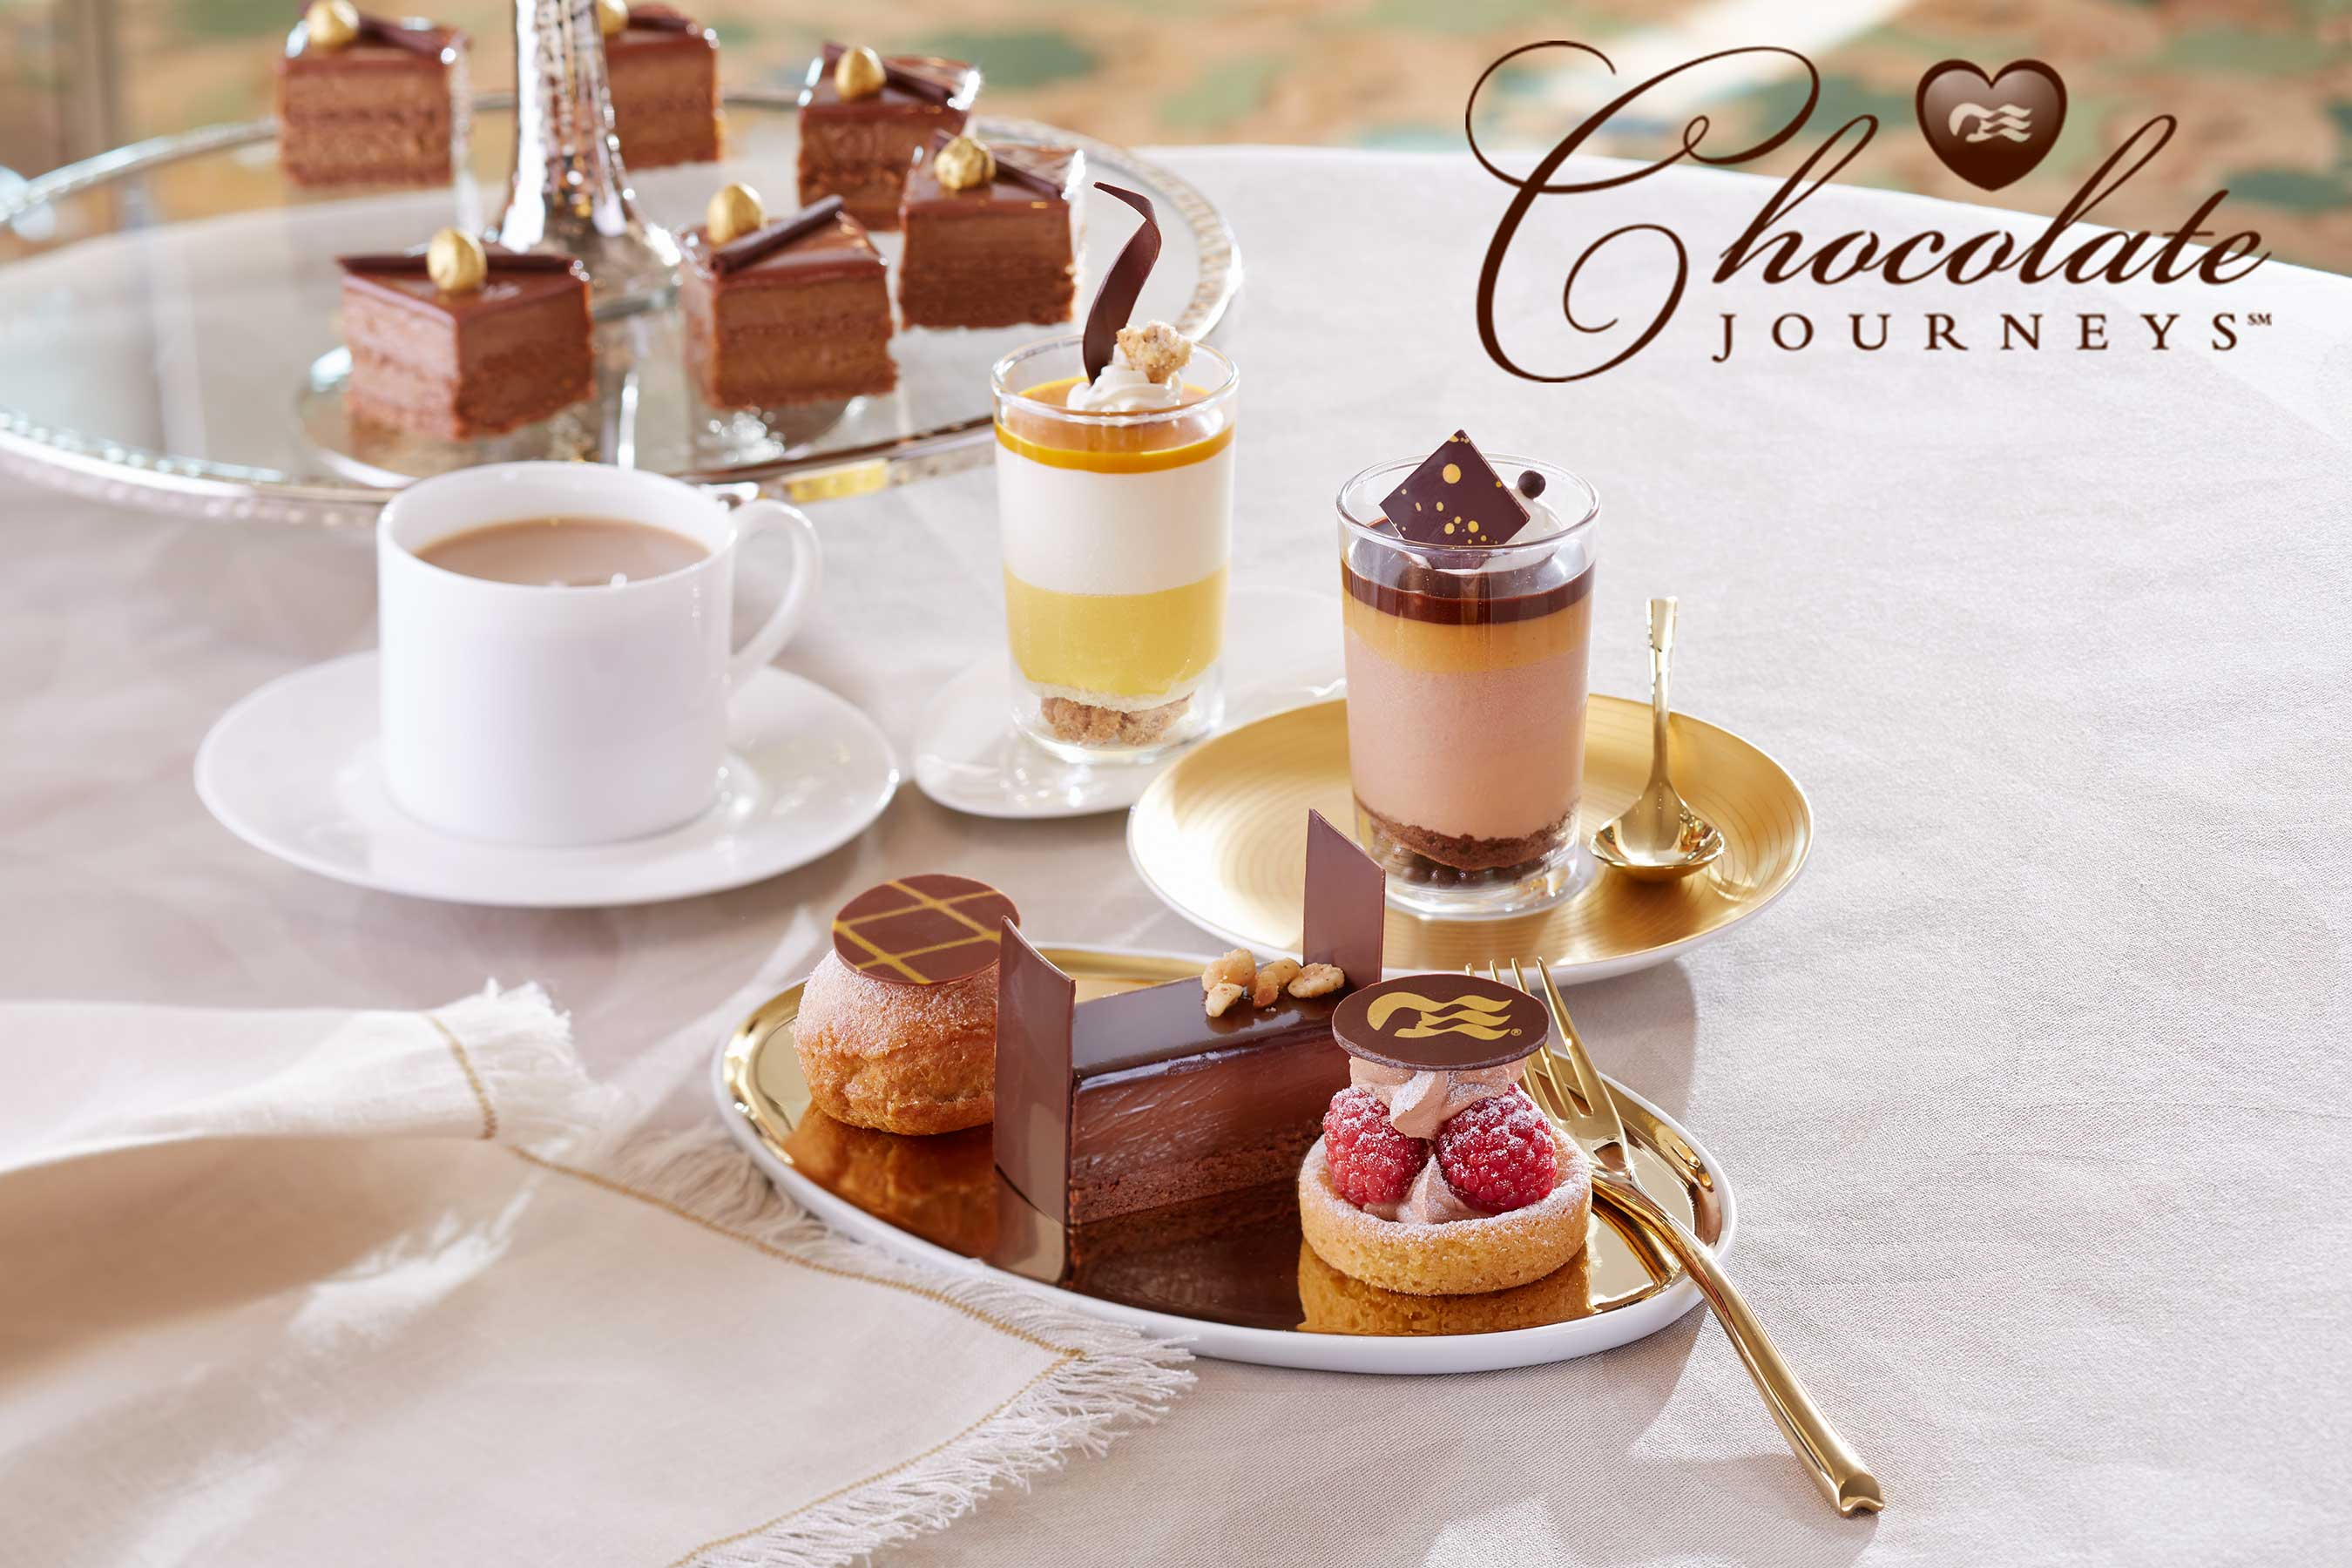 """More information about """"Chocolate Journeys"""" can be found at www.chocolatejourneys.com"""